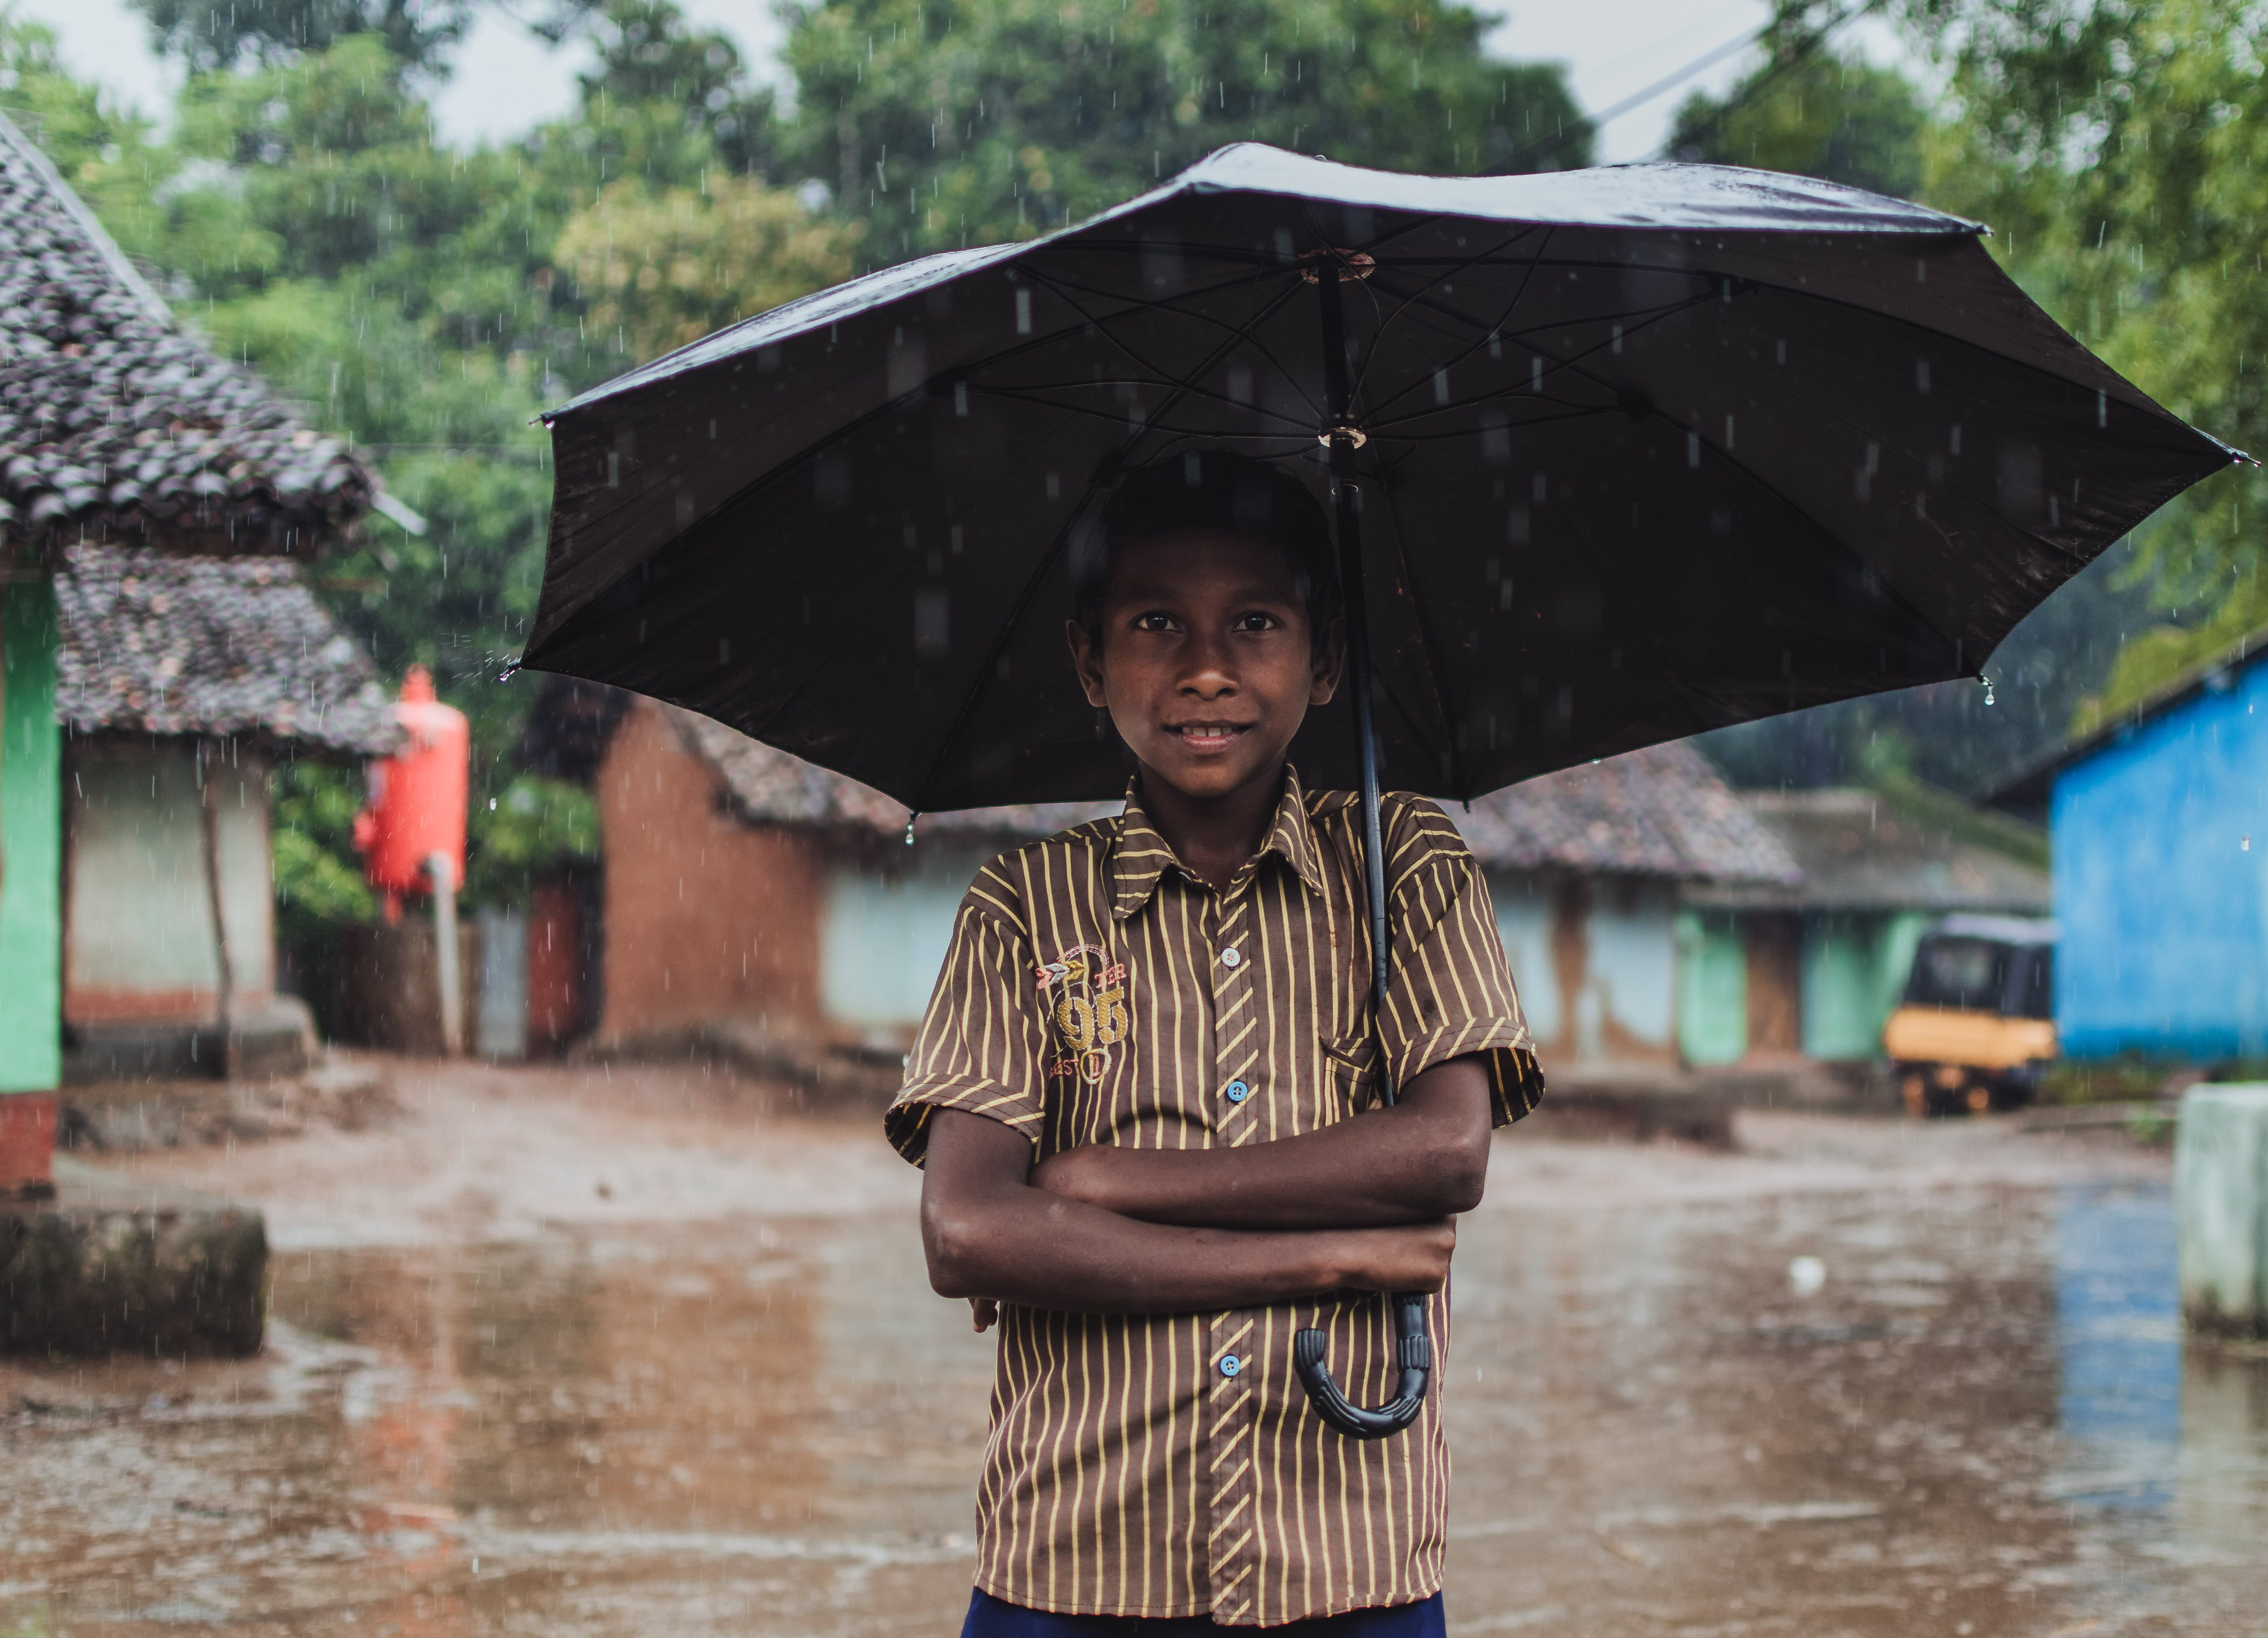 Boy Holding Black Umbrella